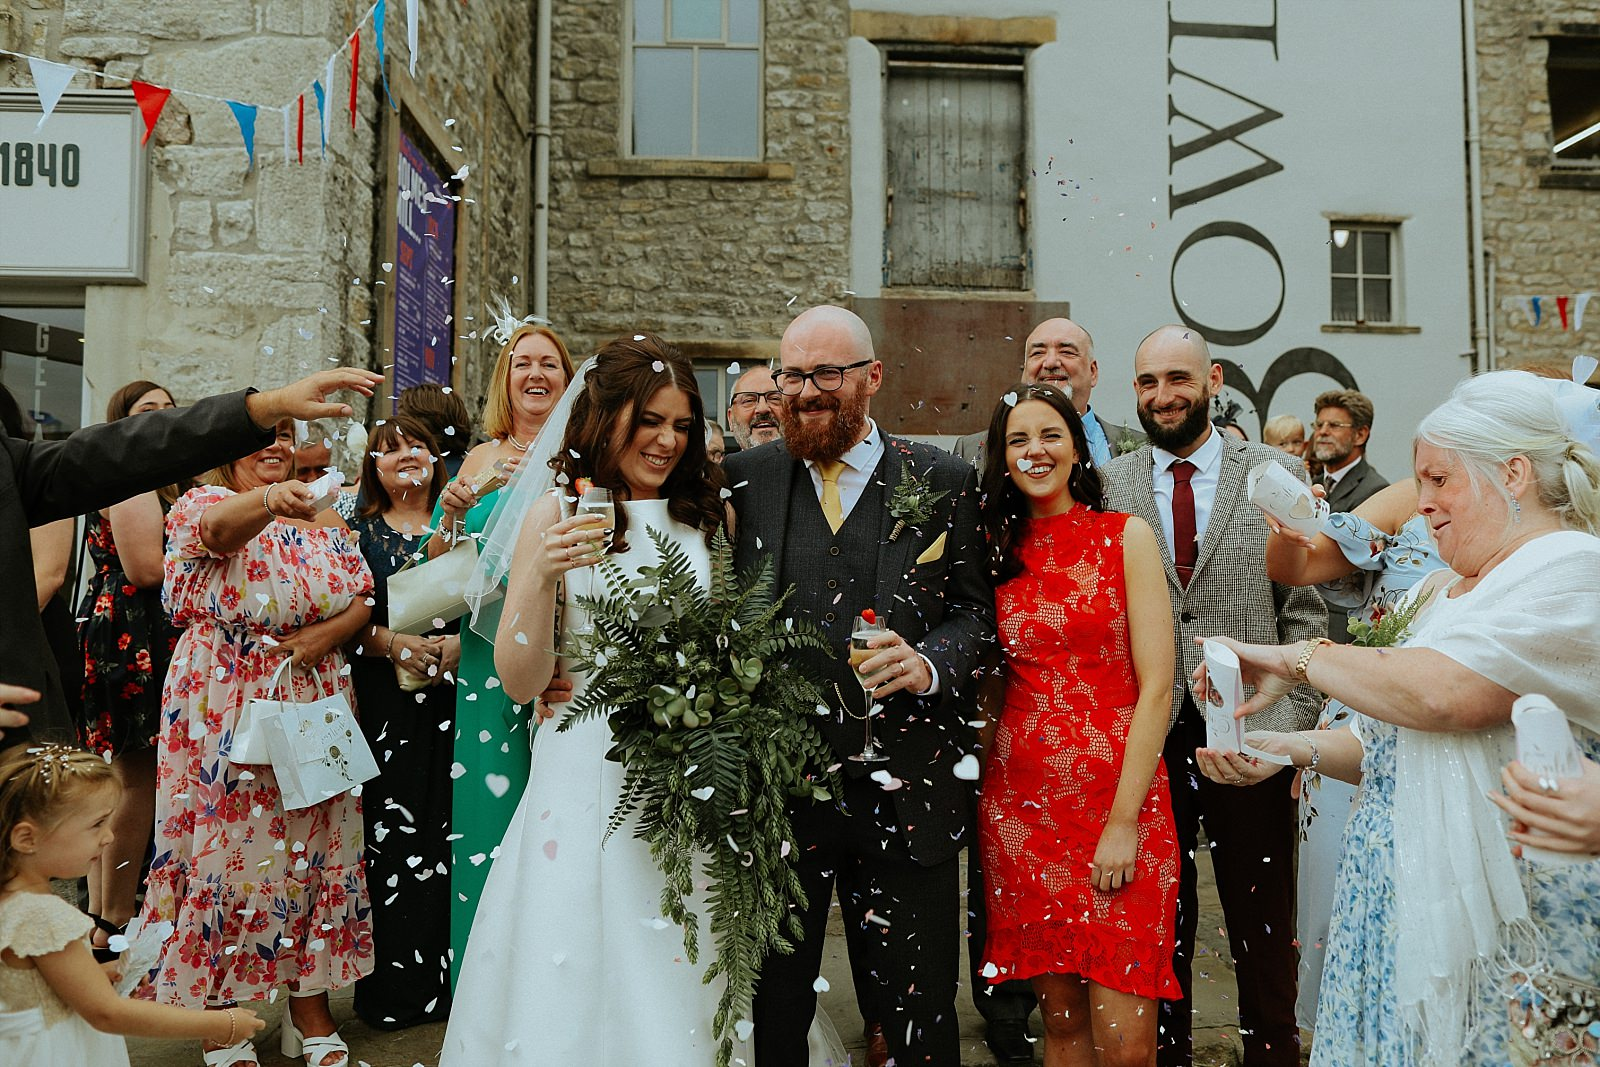 Bride and groom walk out of the Engine room and showered with confetti outside.